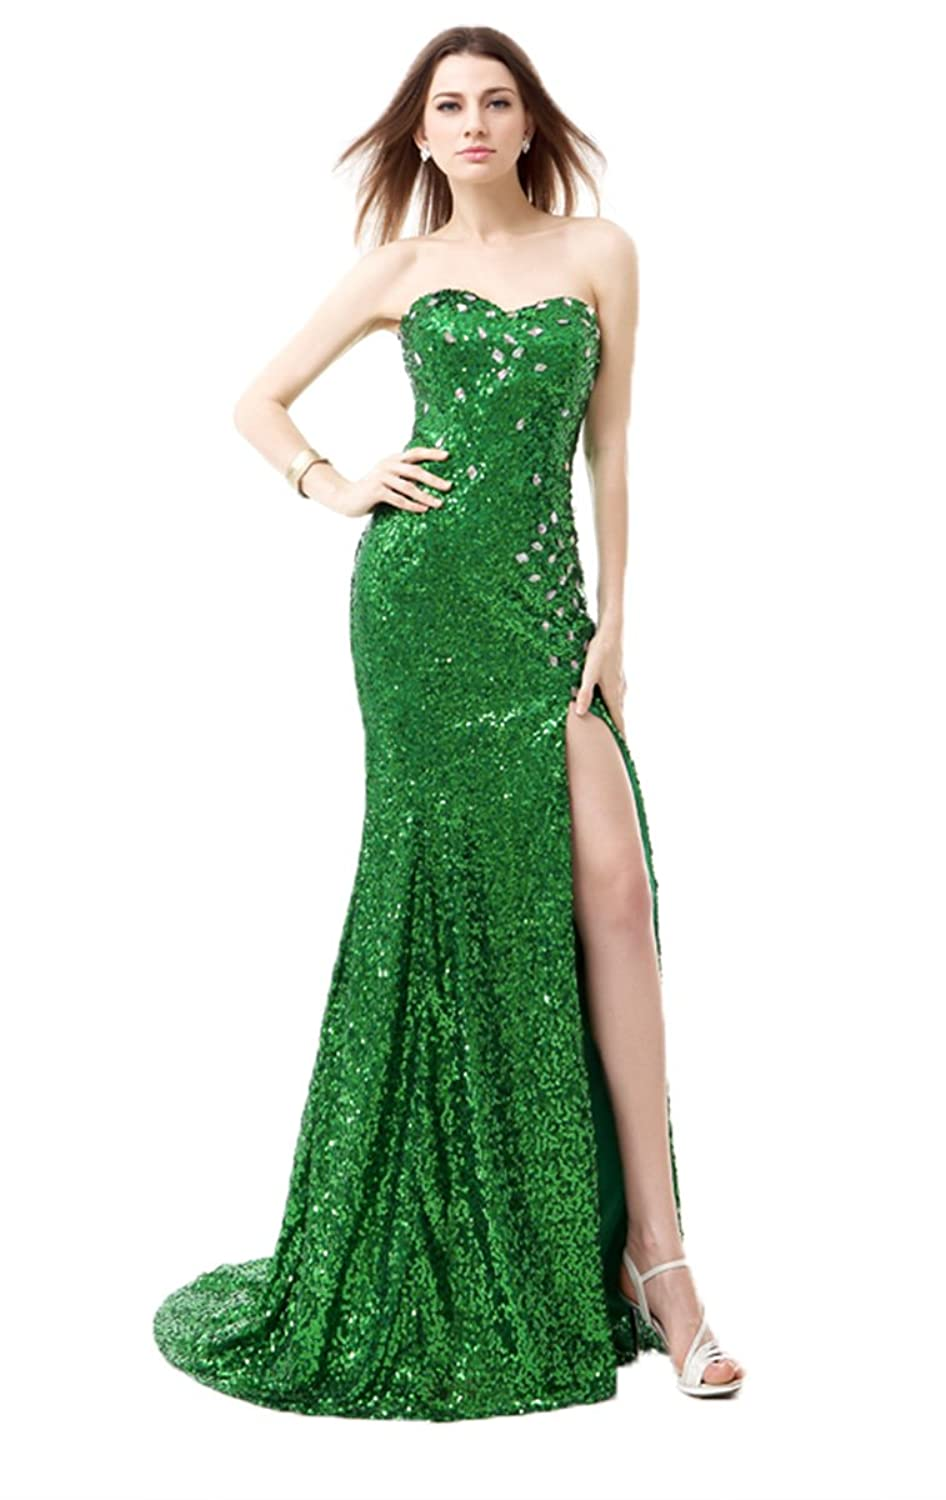 Anna's Bridal Women's Long Sequin Prom Dresses Mermaid Evening Gowns